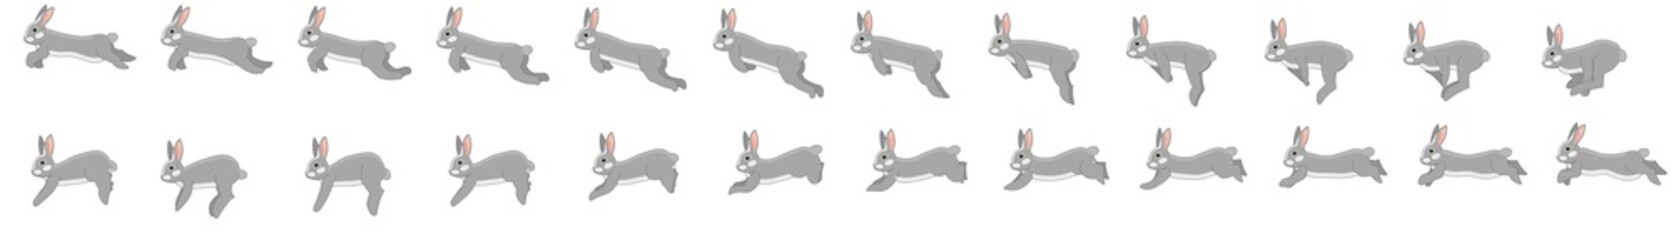 Rabbit run cycle animation spritesheet